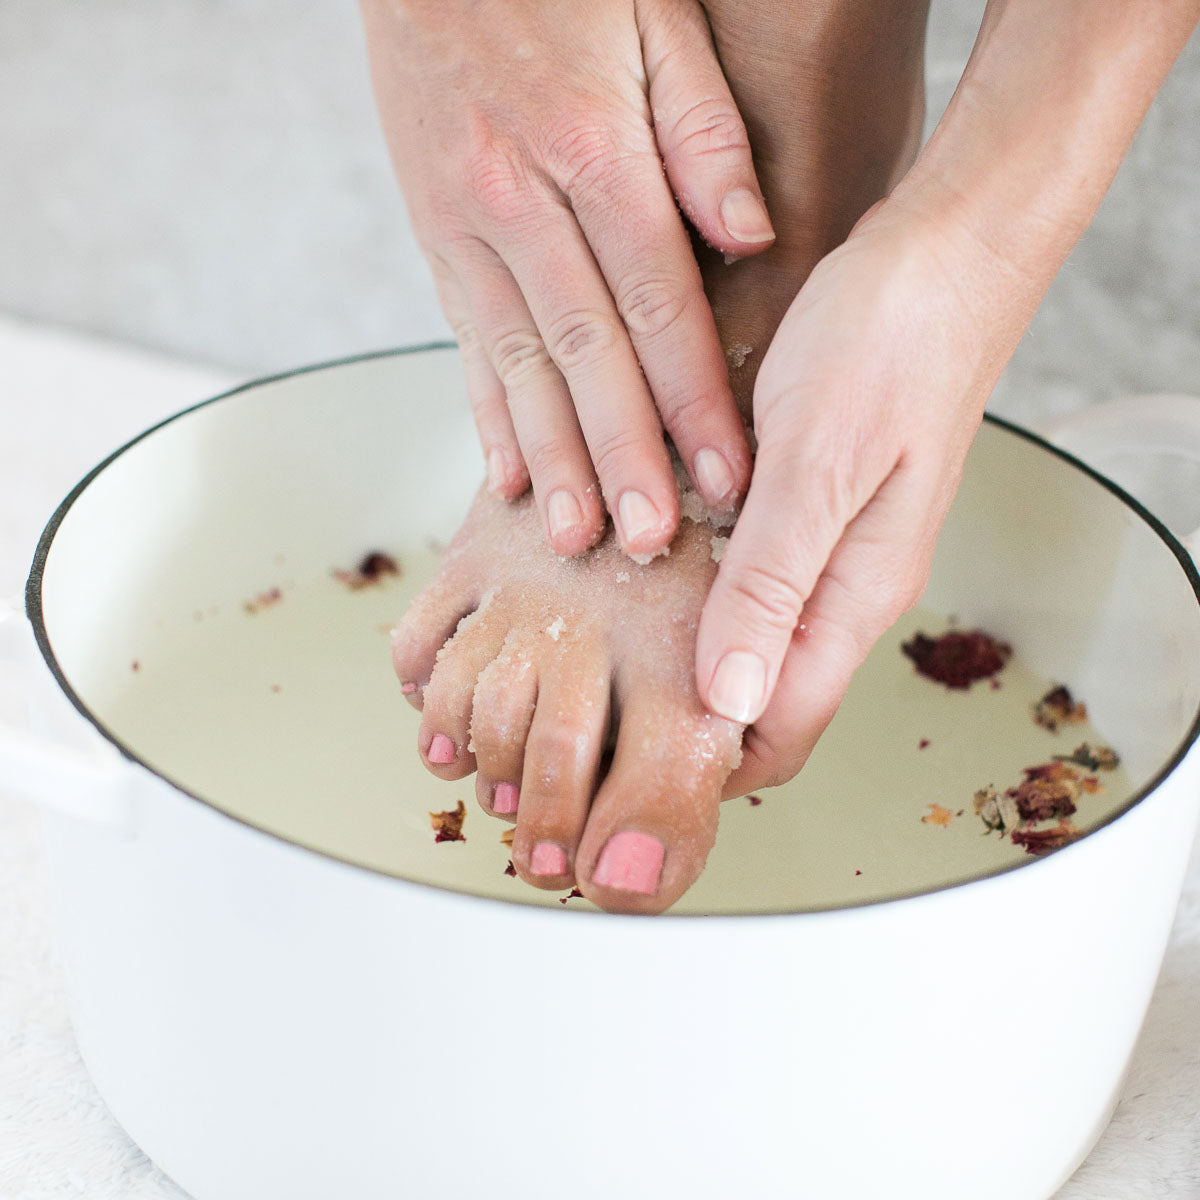 A woman rubs Sugar Scrub into her feet over a tub of water